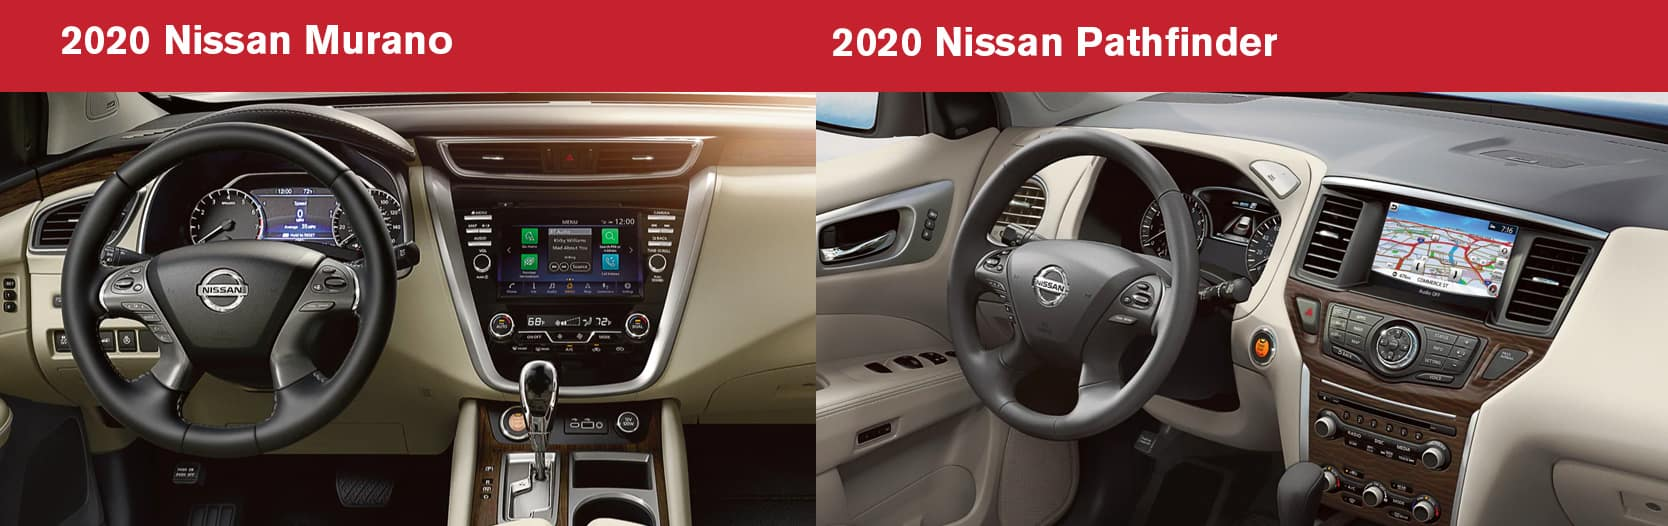 2020 Murano vs 2020 Pathfinder Tech and Safety